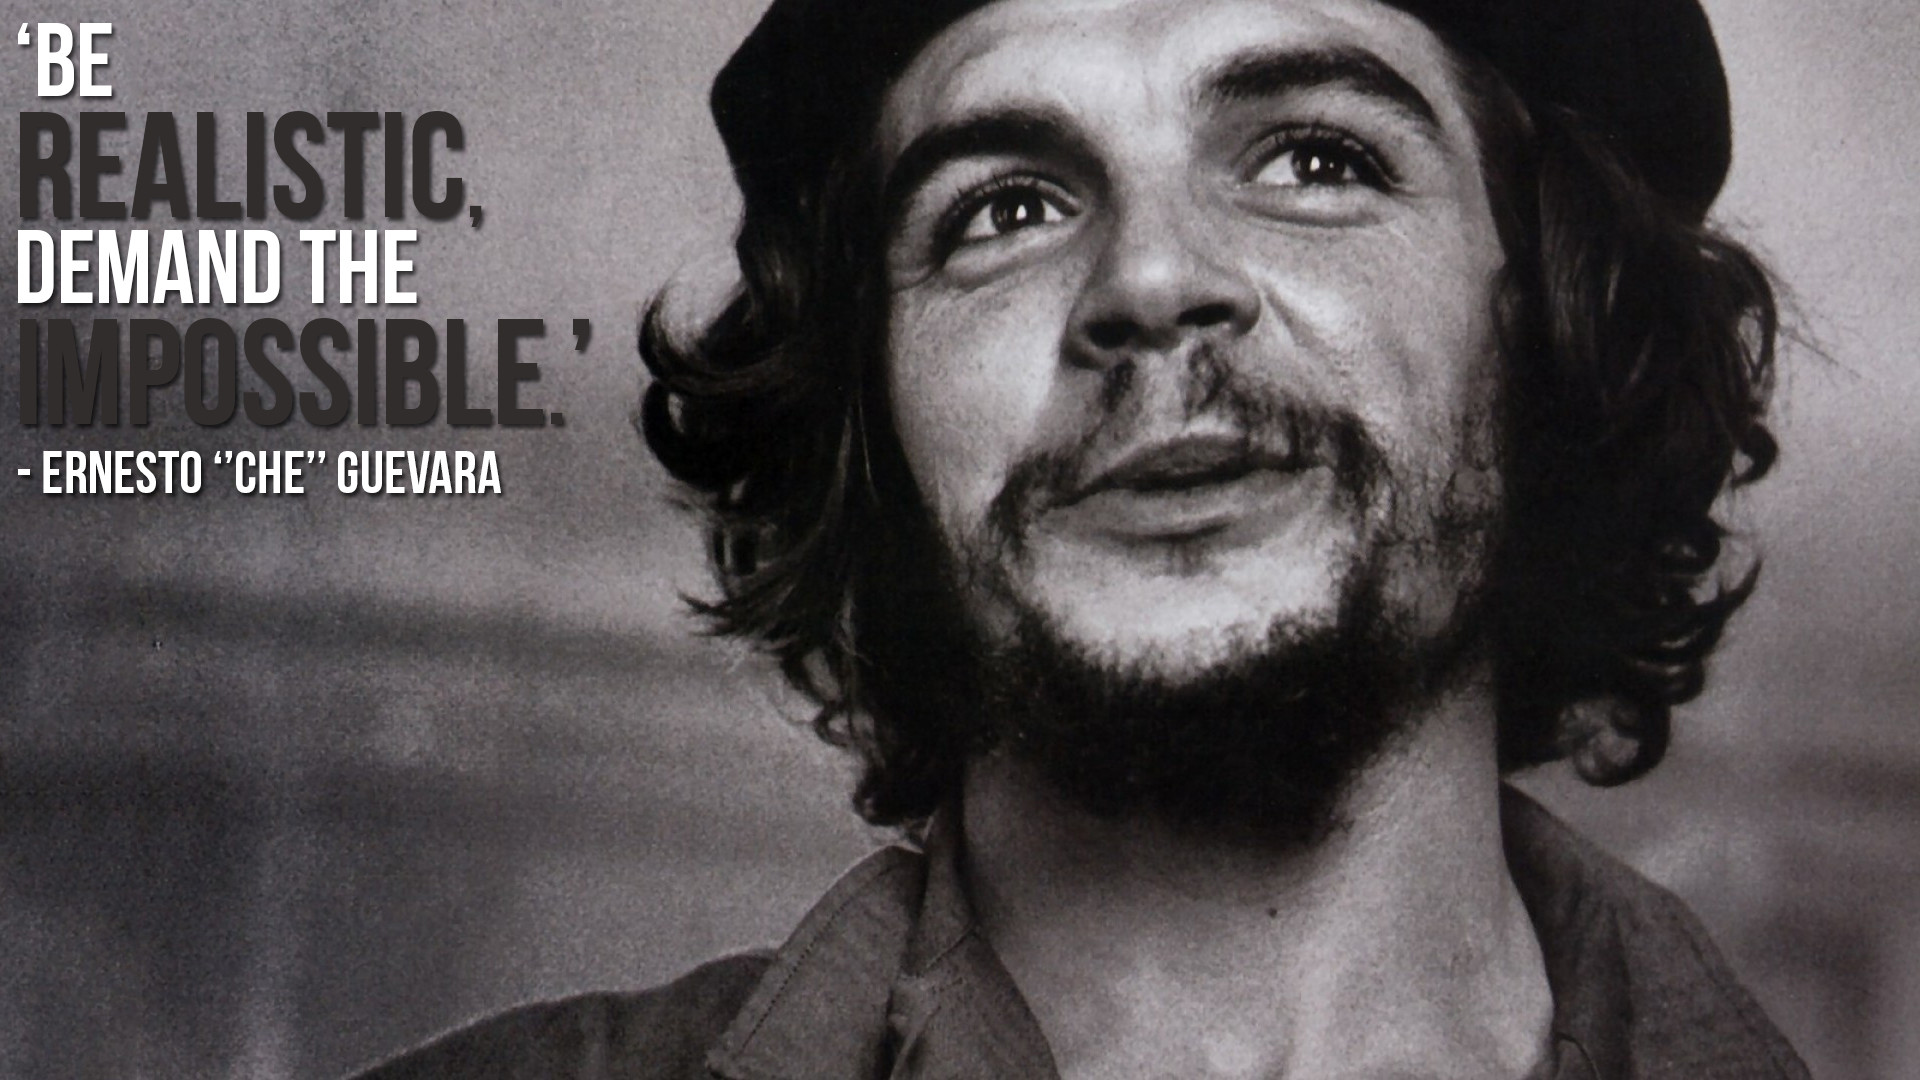 Realistic Impossible B-W Face Che Guevara anarchy wallpaper | 1920x1080 | 120092 | WallpaperUP